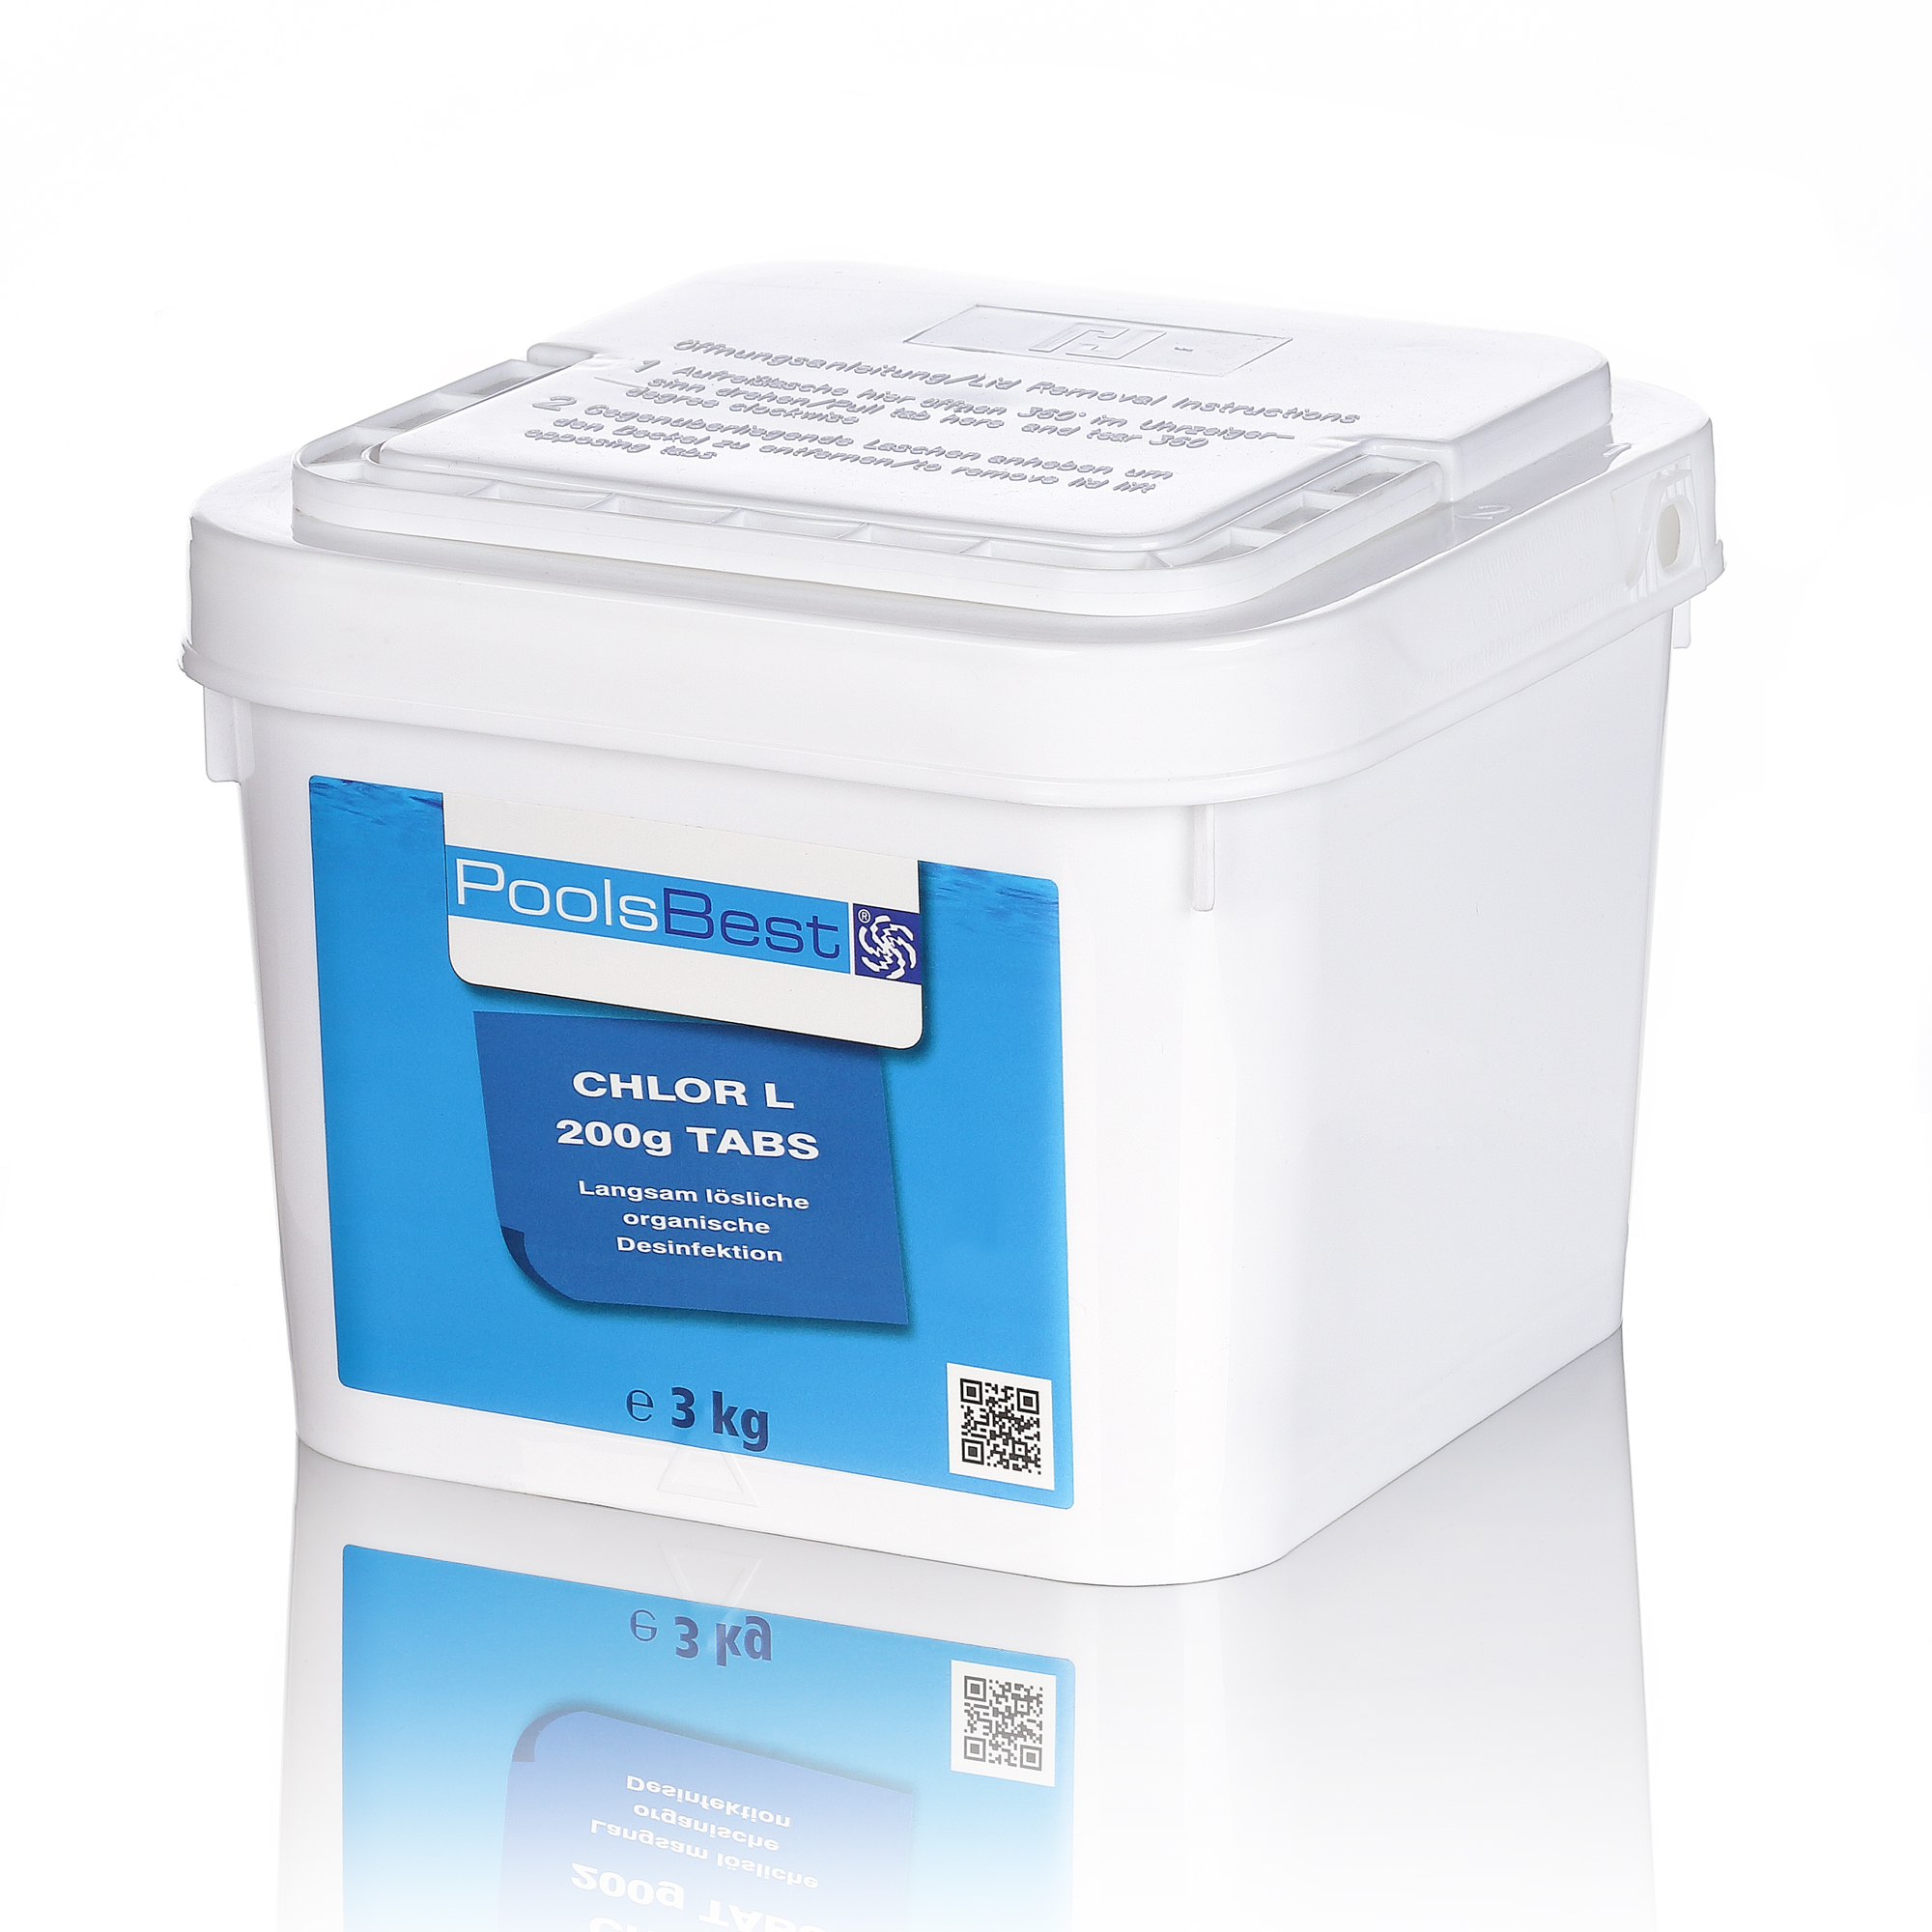 Pool Best Multitabs 5 In 1 3 Kg Poolsbest Chlortabletten L 200g 80 90 Aktivchlor